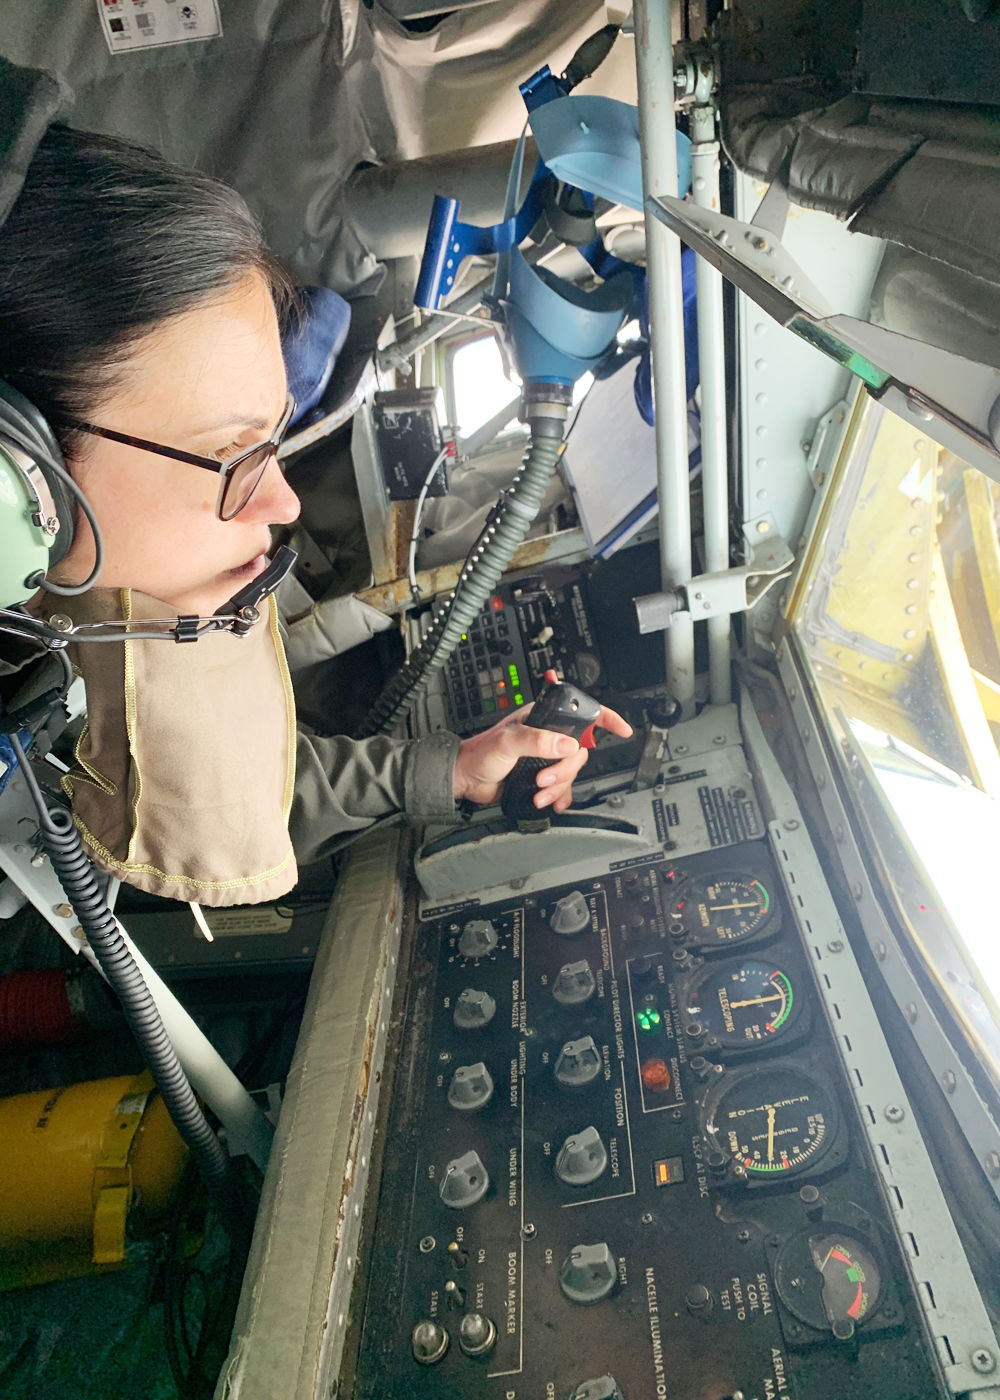 Daughter of local man fuels up Air Force planes in flight panel